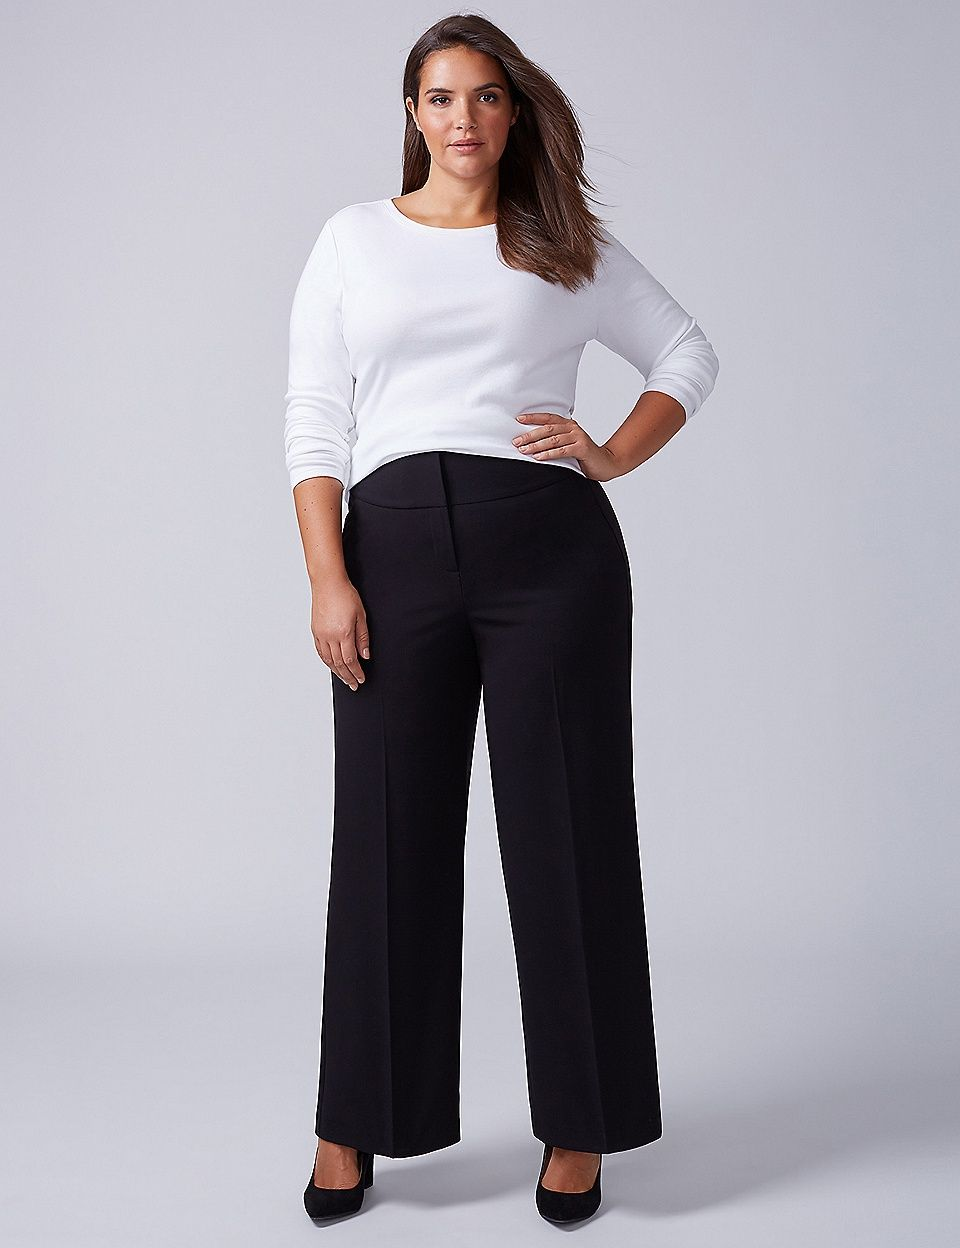 41aa7bfd7b2 Lena Tailored Stretch Wide Leg Pant - Corset Lace-Up Back